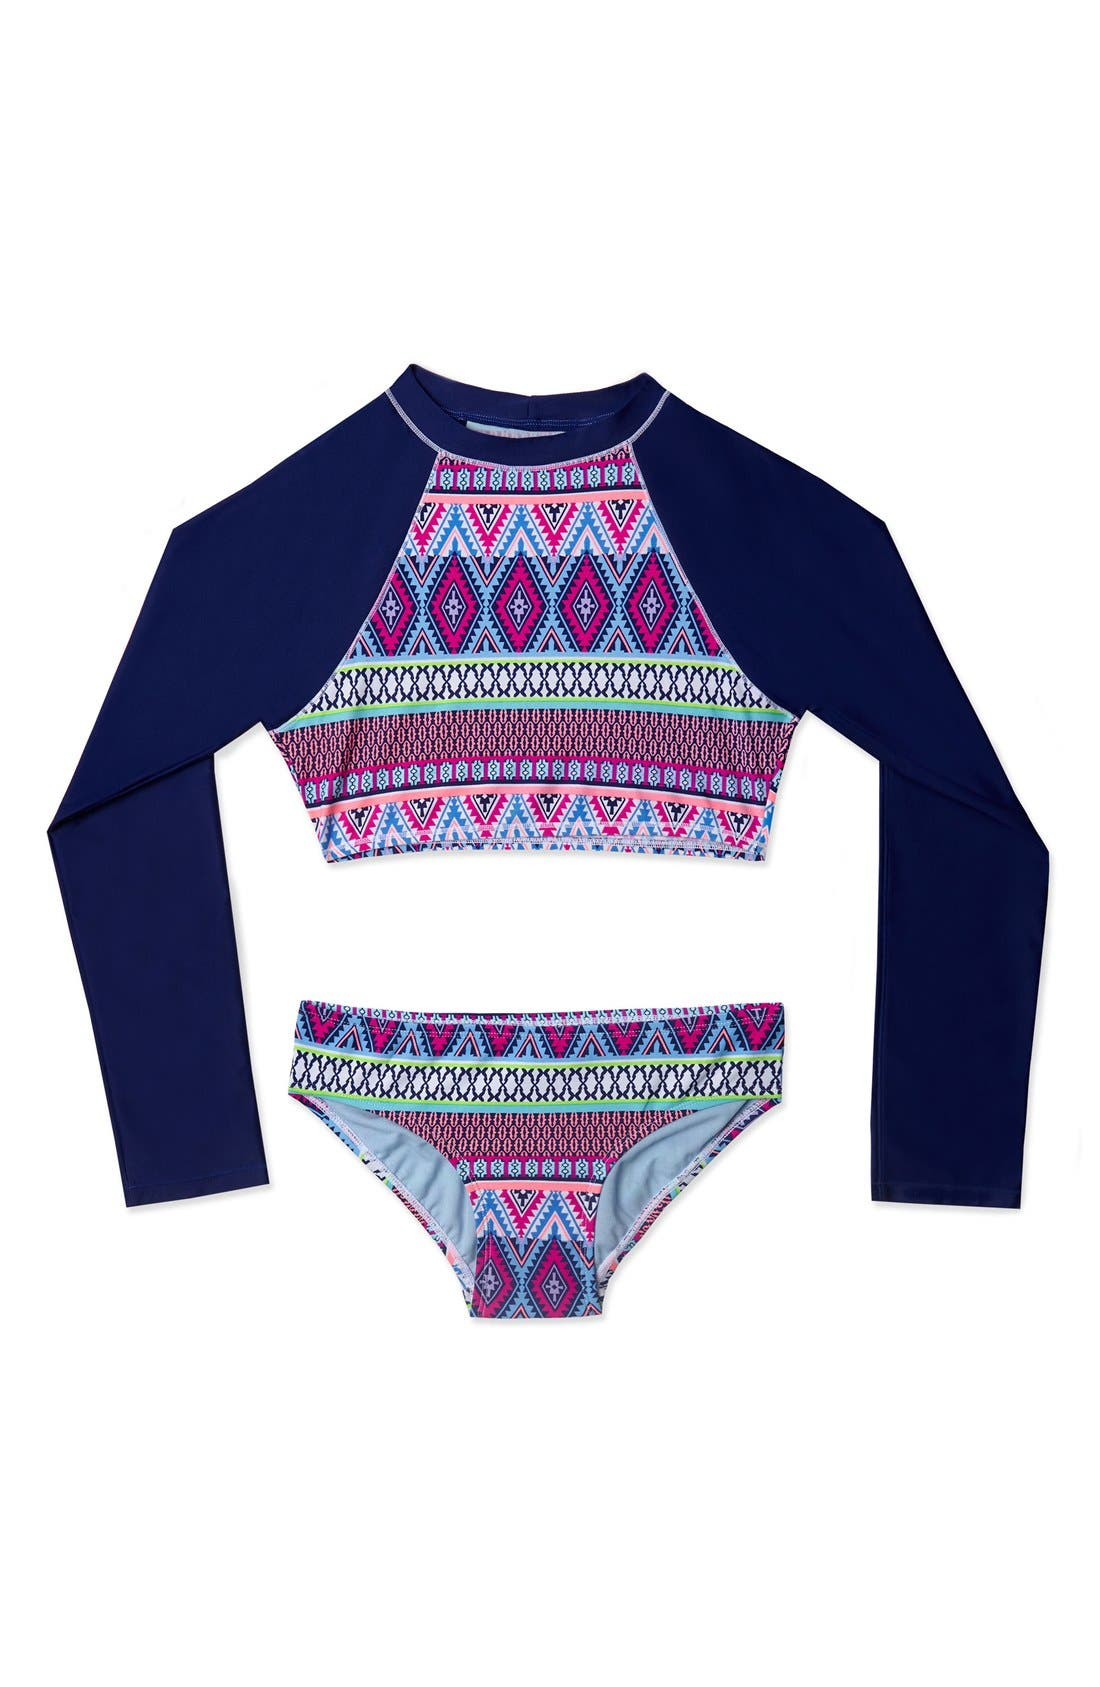 'Stripe Fusion' Two-Piece Rashguard Swimsuit,                         Main,                         color, Navy Pink